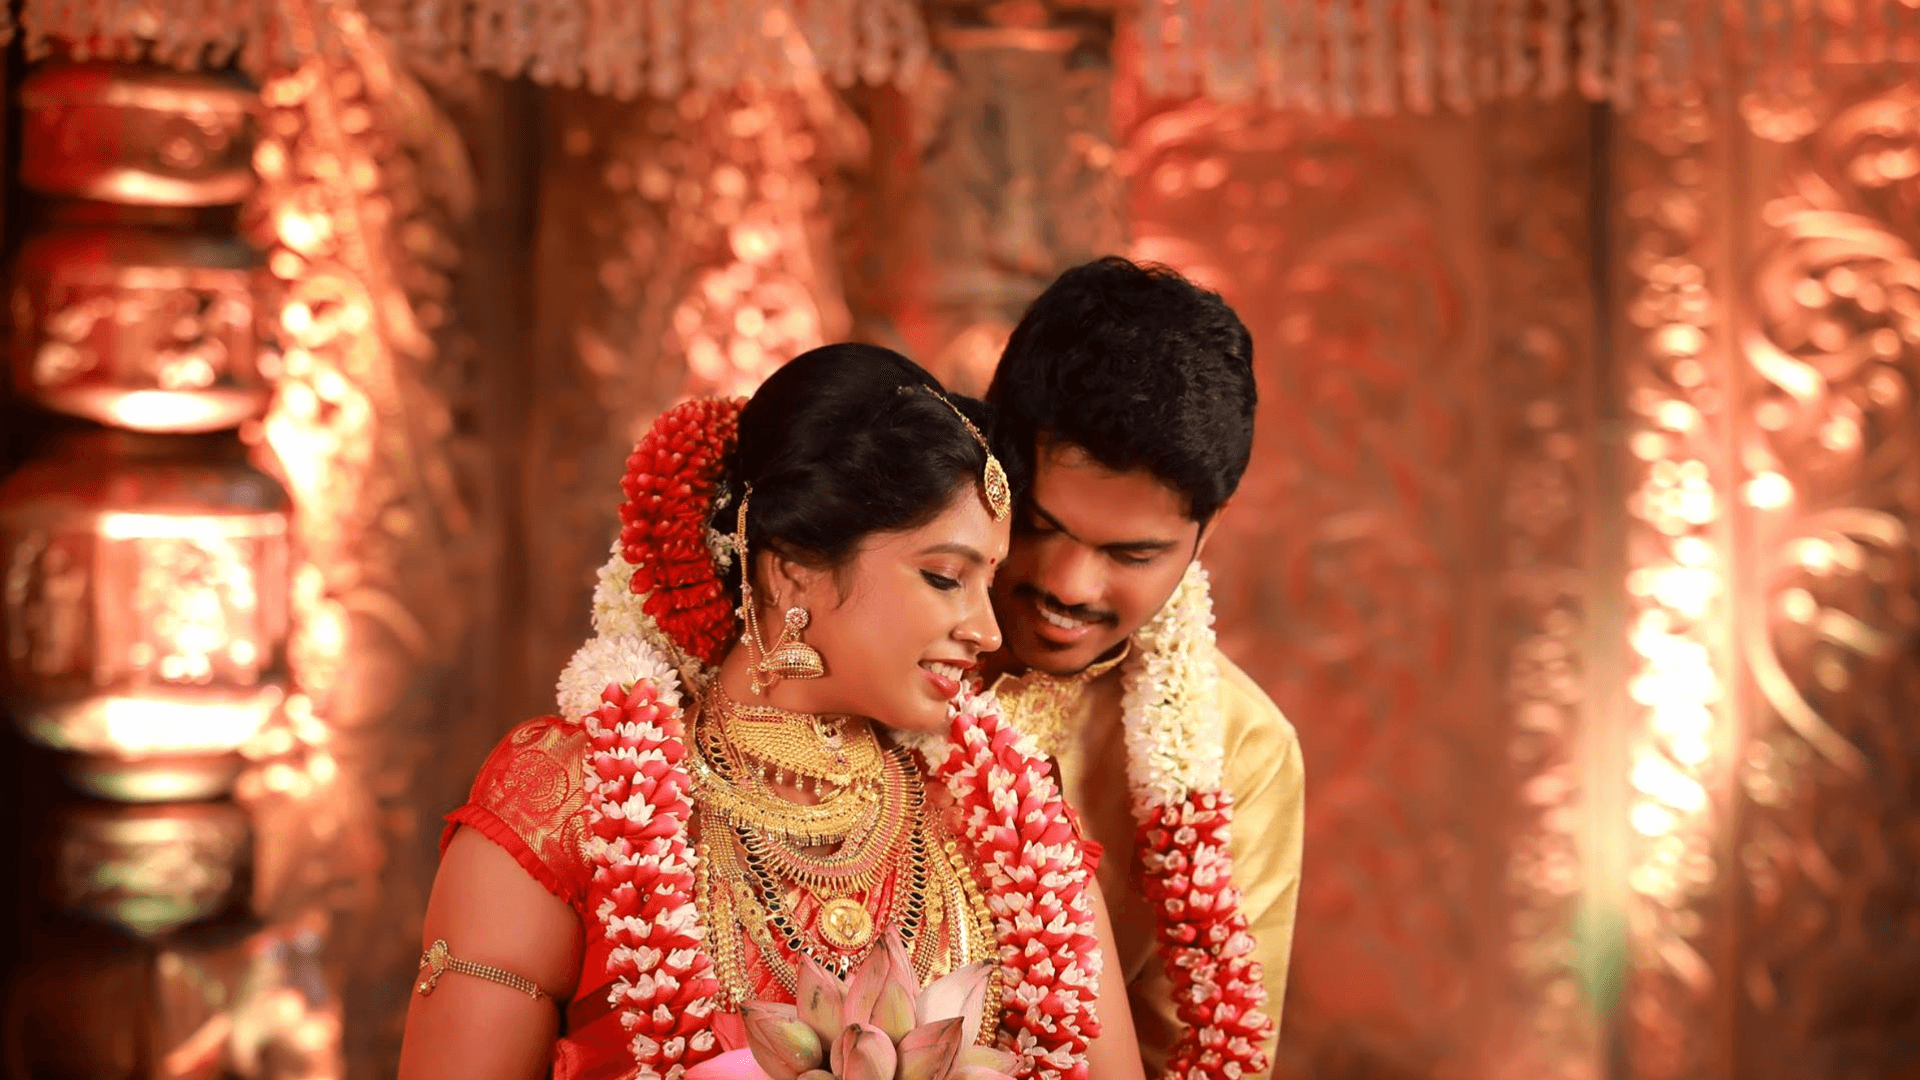 Free Kerala matrimony for Ezhuthachan community